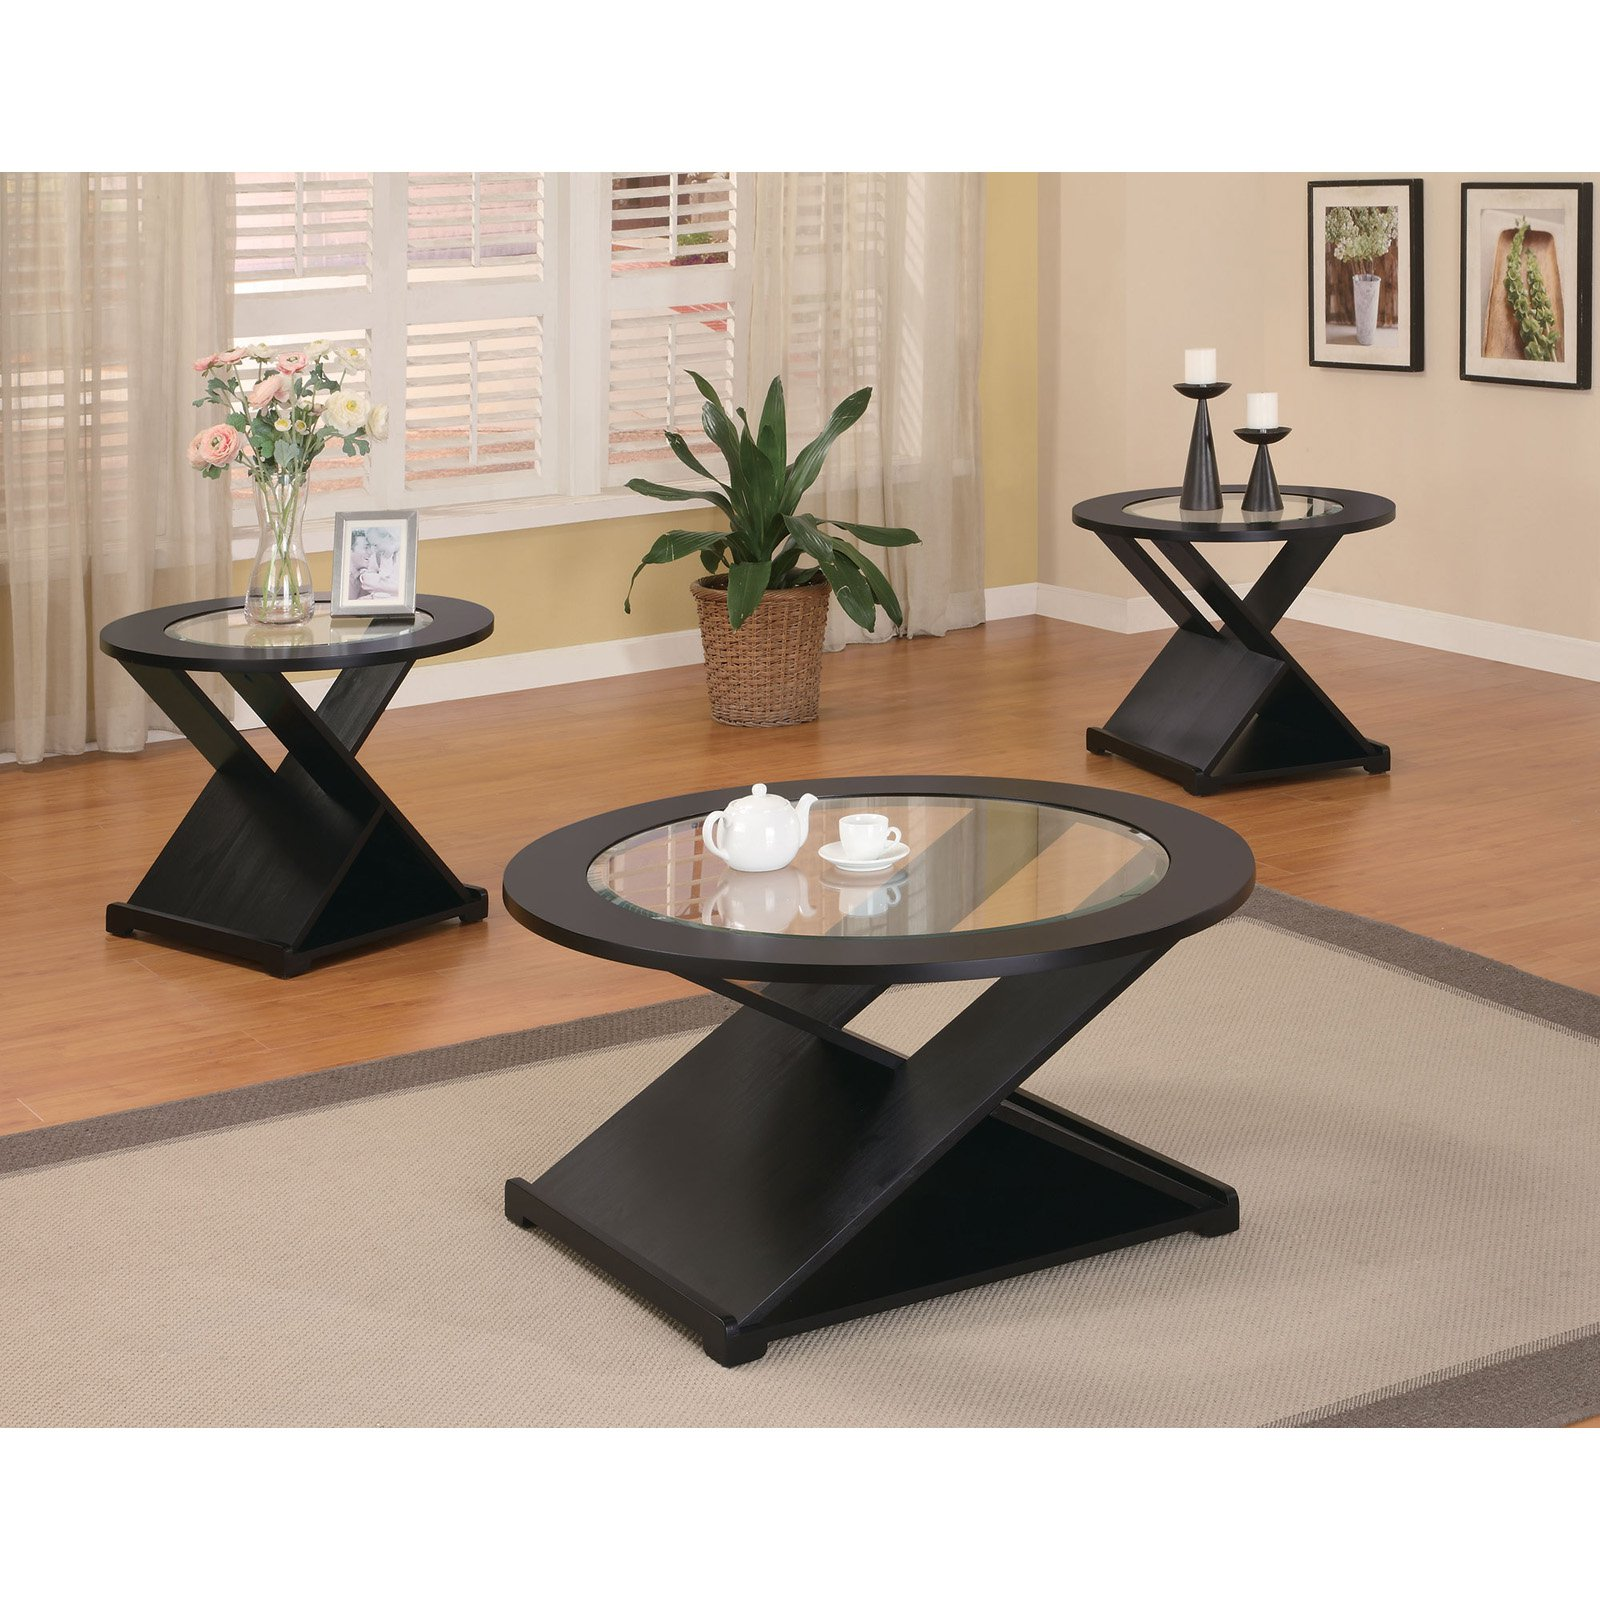 living design sets small accent tables spaces glass set for modern center designs side top decor designer table nest furniture end room black including amusing full size resin and